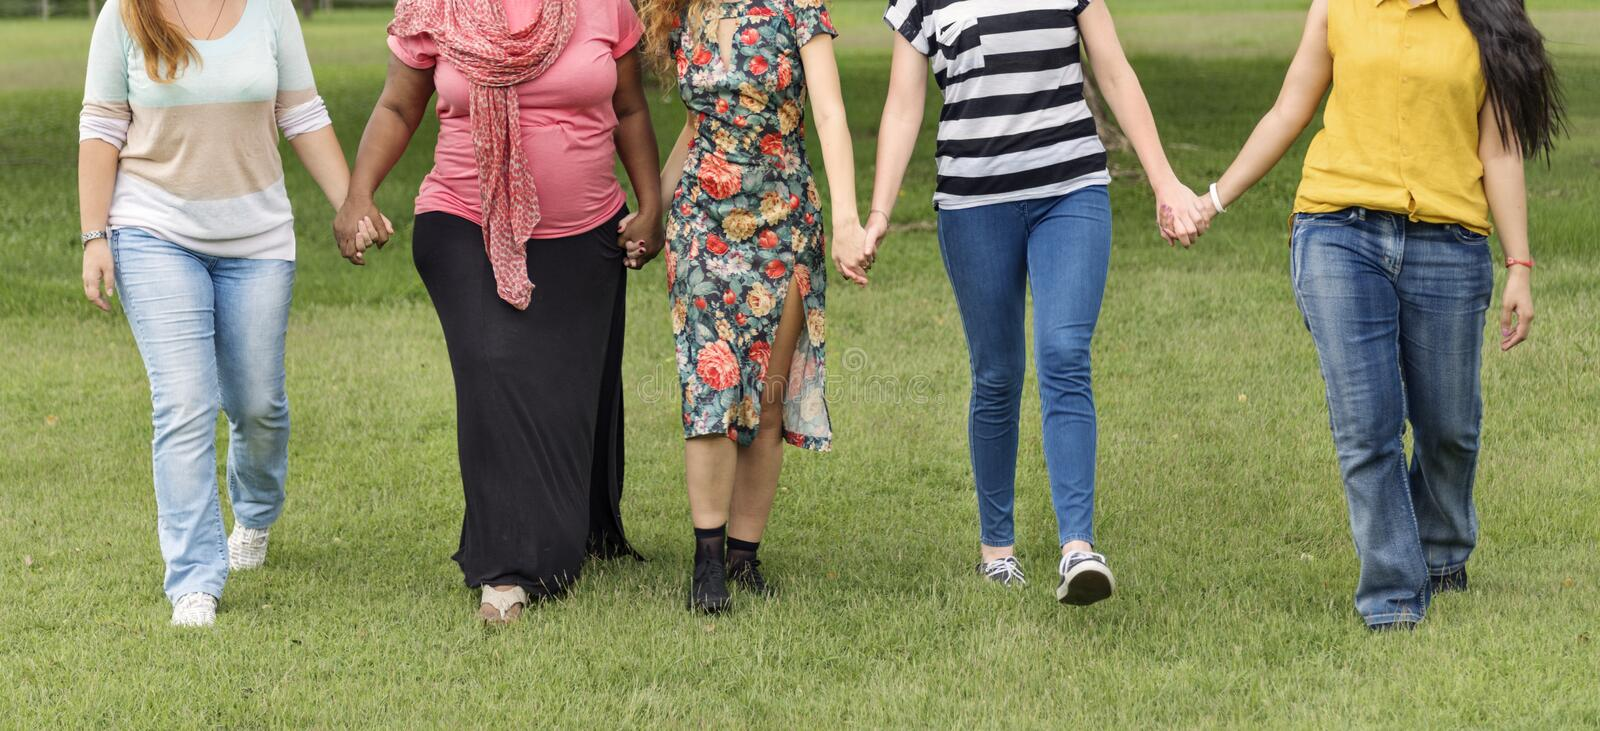 Group of Women Socialize Teamwork Happiness Concept royalty free stock photos